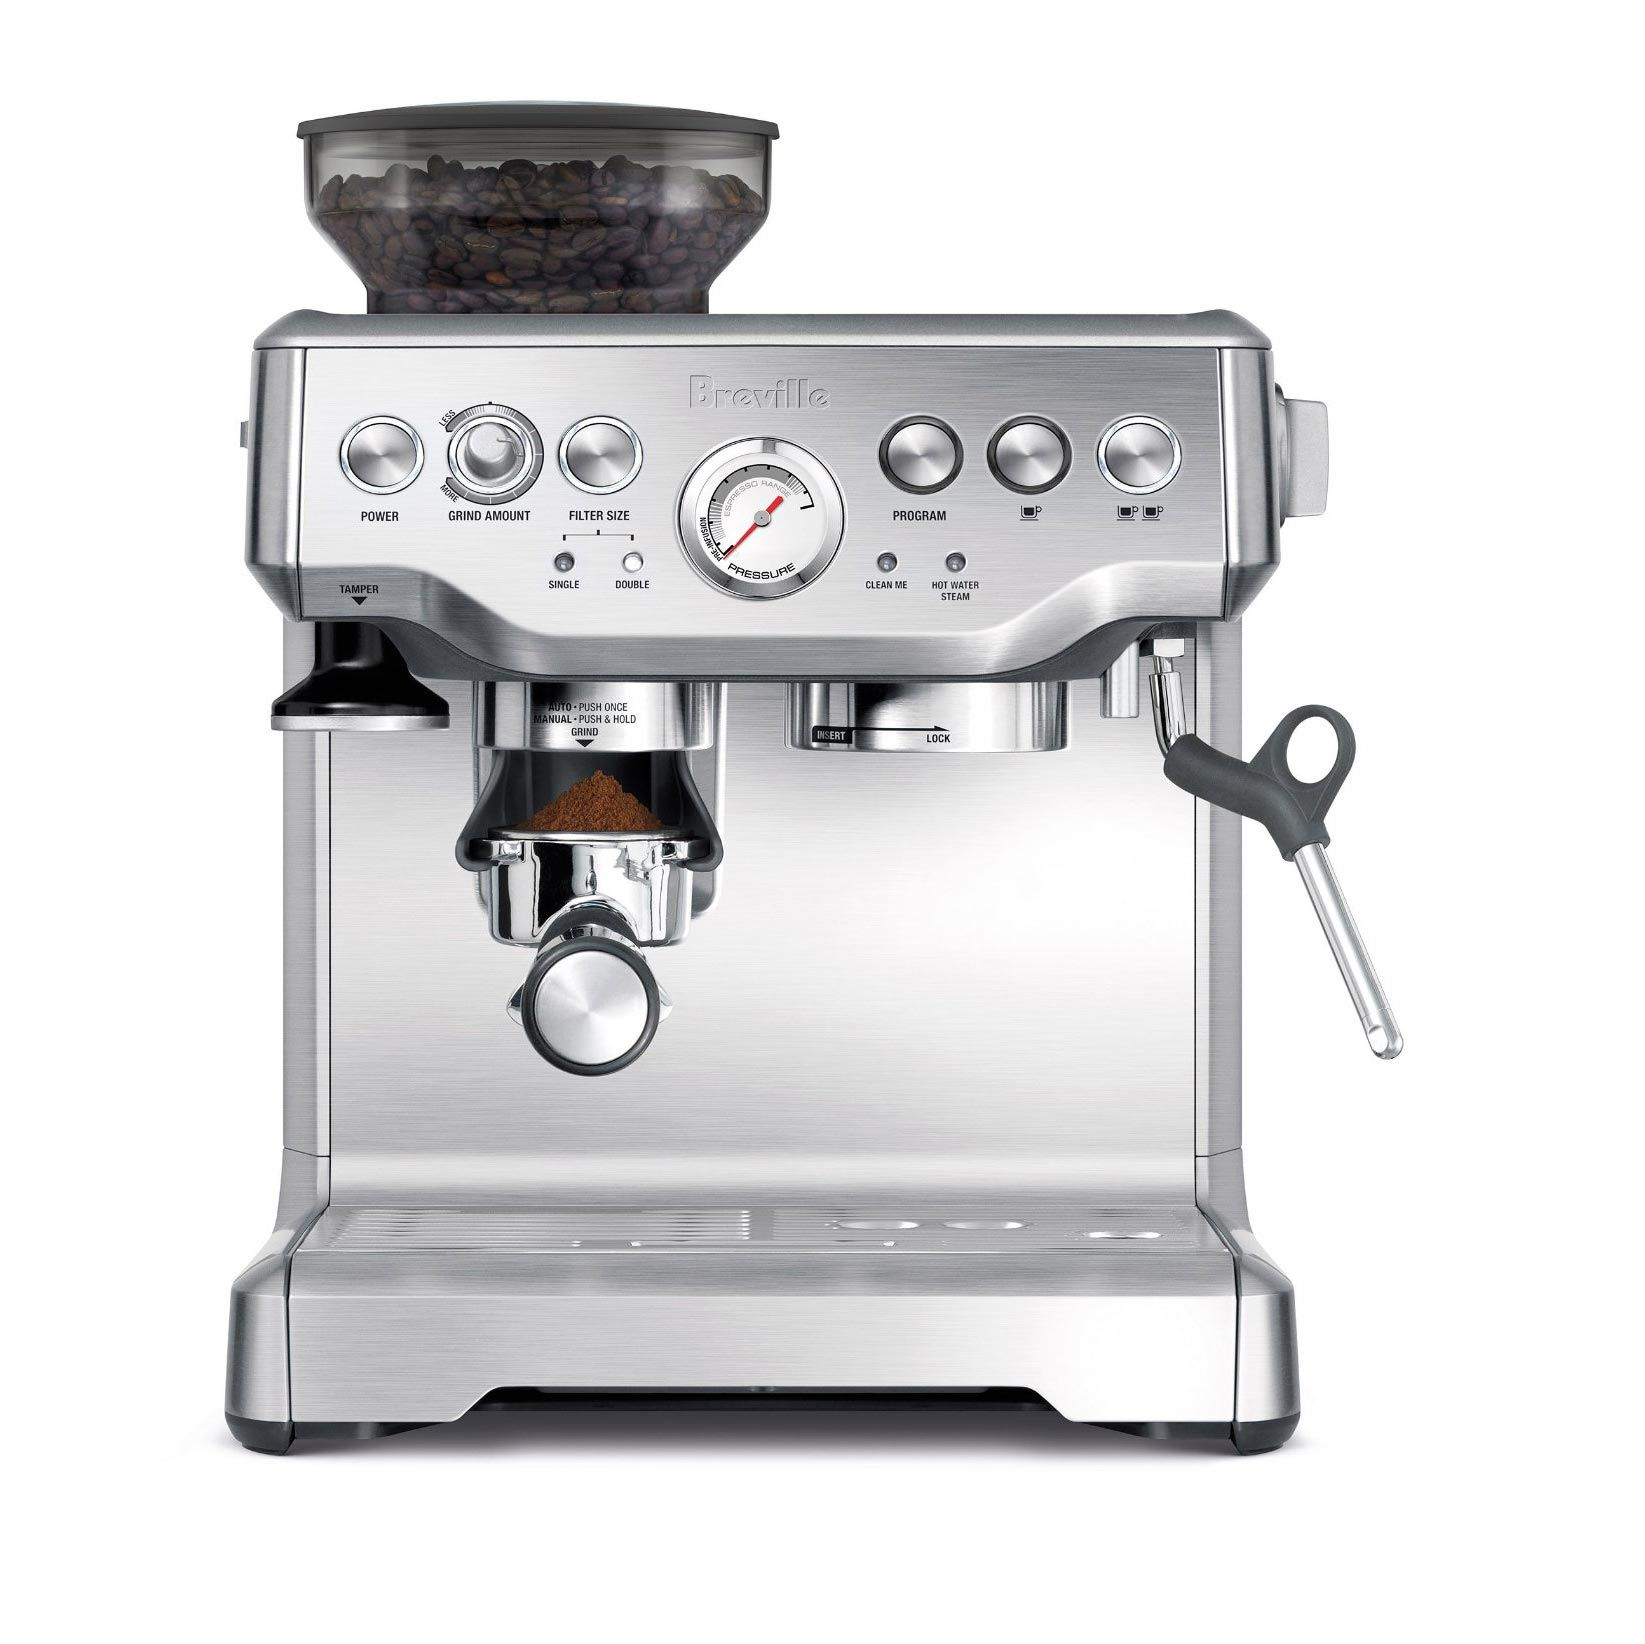 Breville Bes870xl Barista Express Espresso Machine Find Out Where To Buy It By Clic Best Home Espresso Machine Breville Espresso Machine Home Espresso Machine